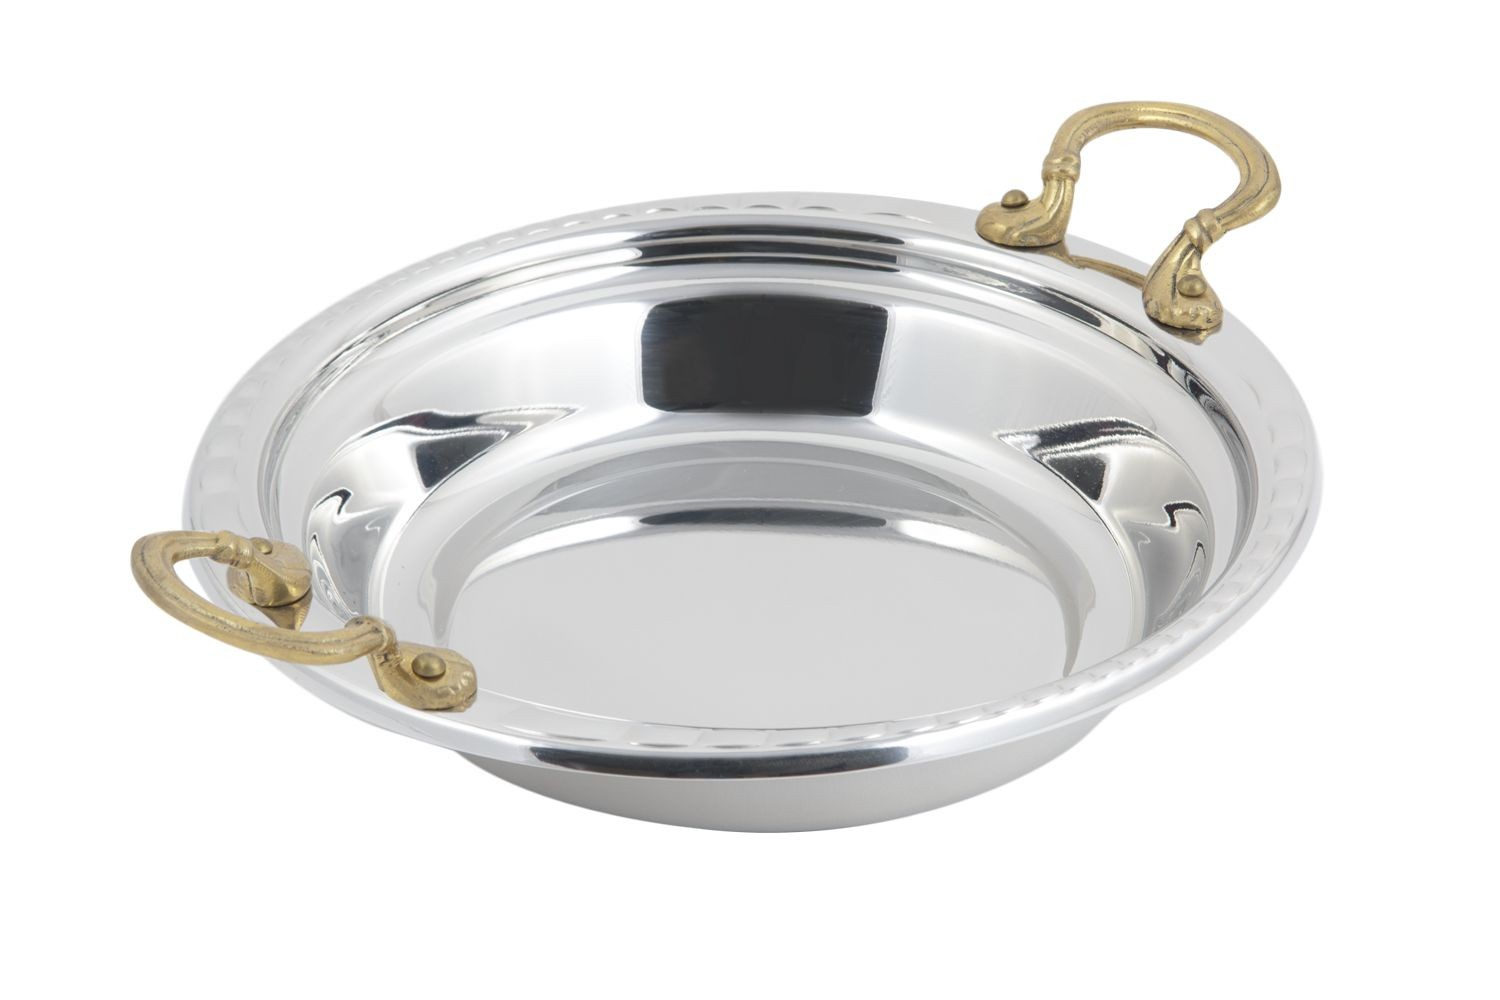 Bon Chef 5655HR Arches Design Casserole Dish with Round Brass Handles, 2 1/2 Qt.